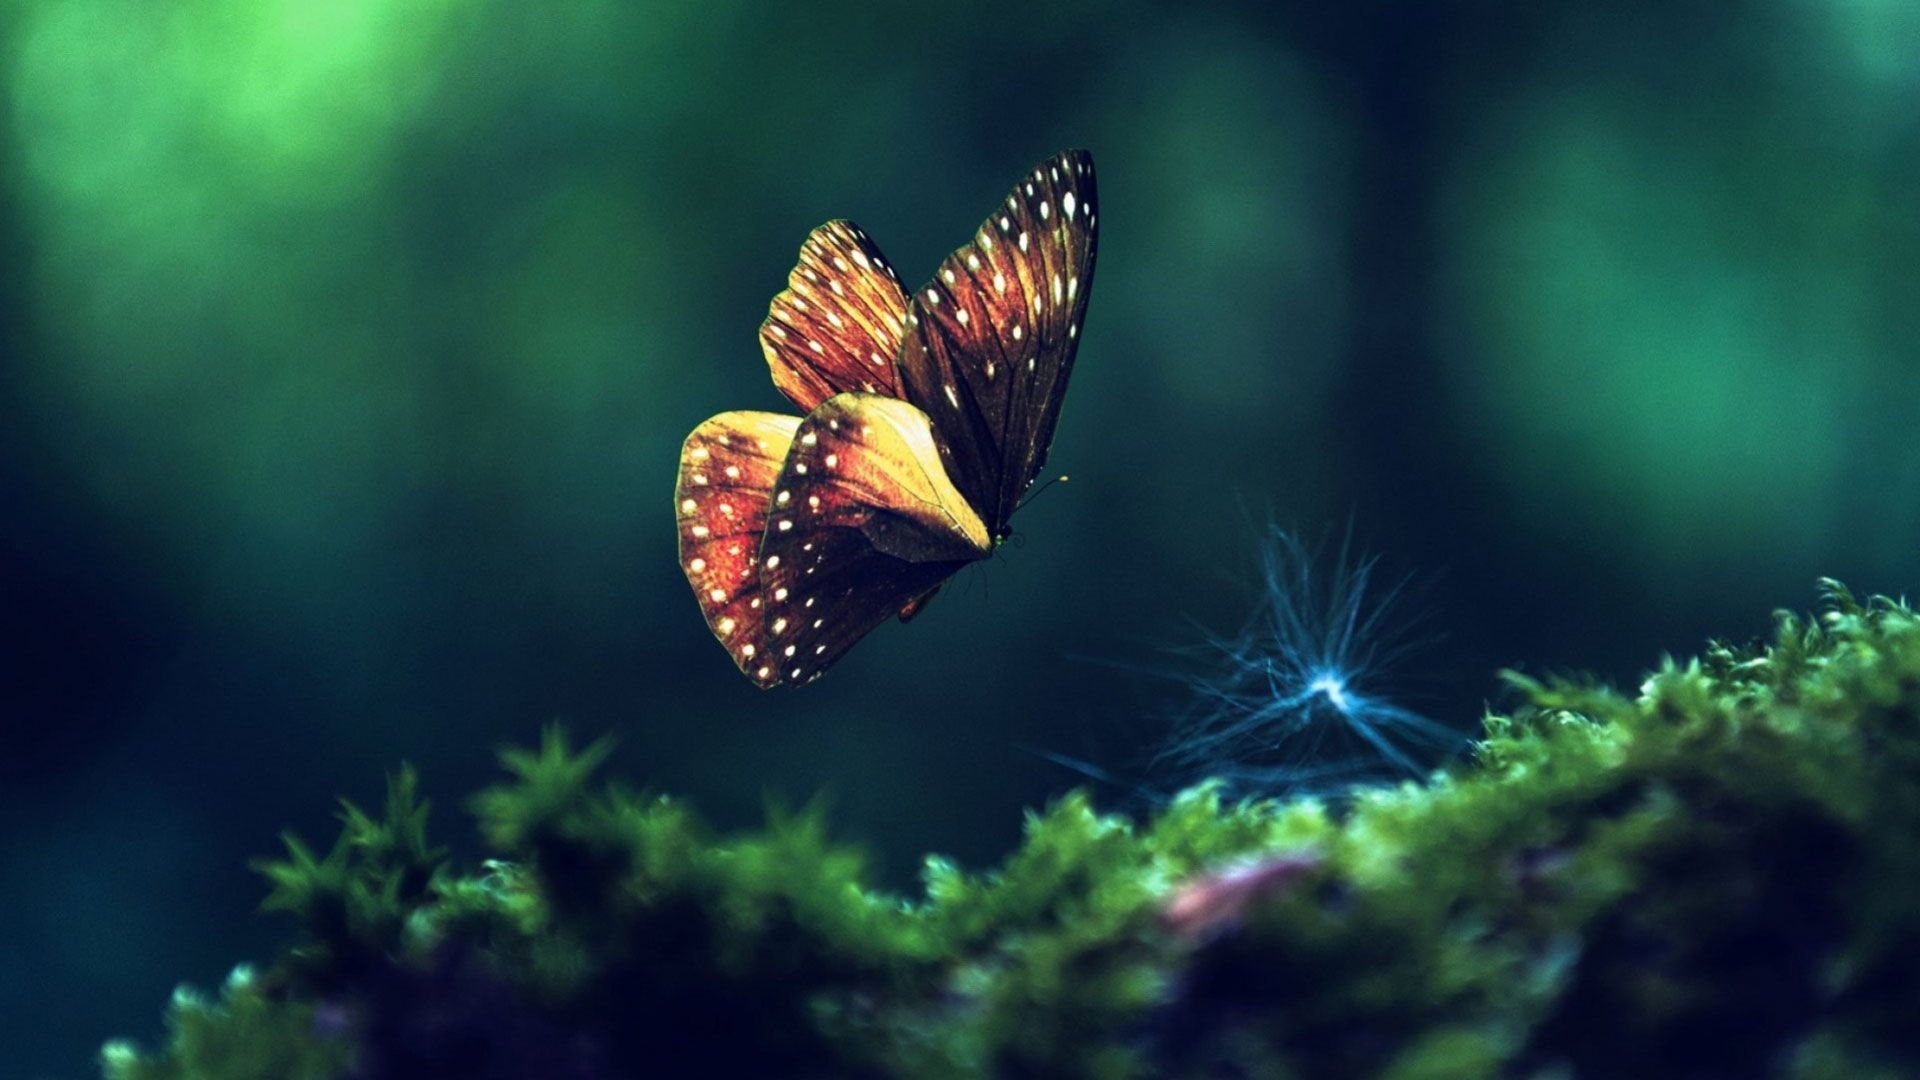 Beautiful Butterfly Macro Attractive Nature Hd Quality Desktop Background Wallpaper Hd 1080p Butterfly Wallpaper Live Wallpapers Aesthetic Wallpapers